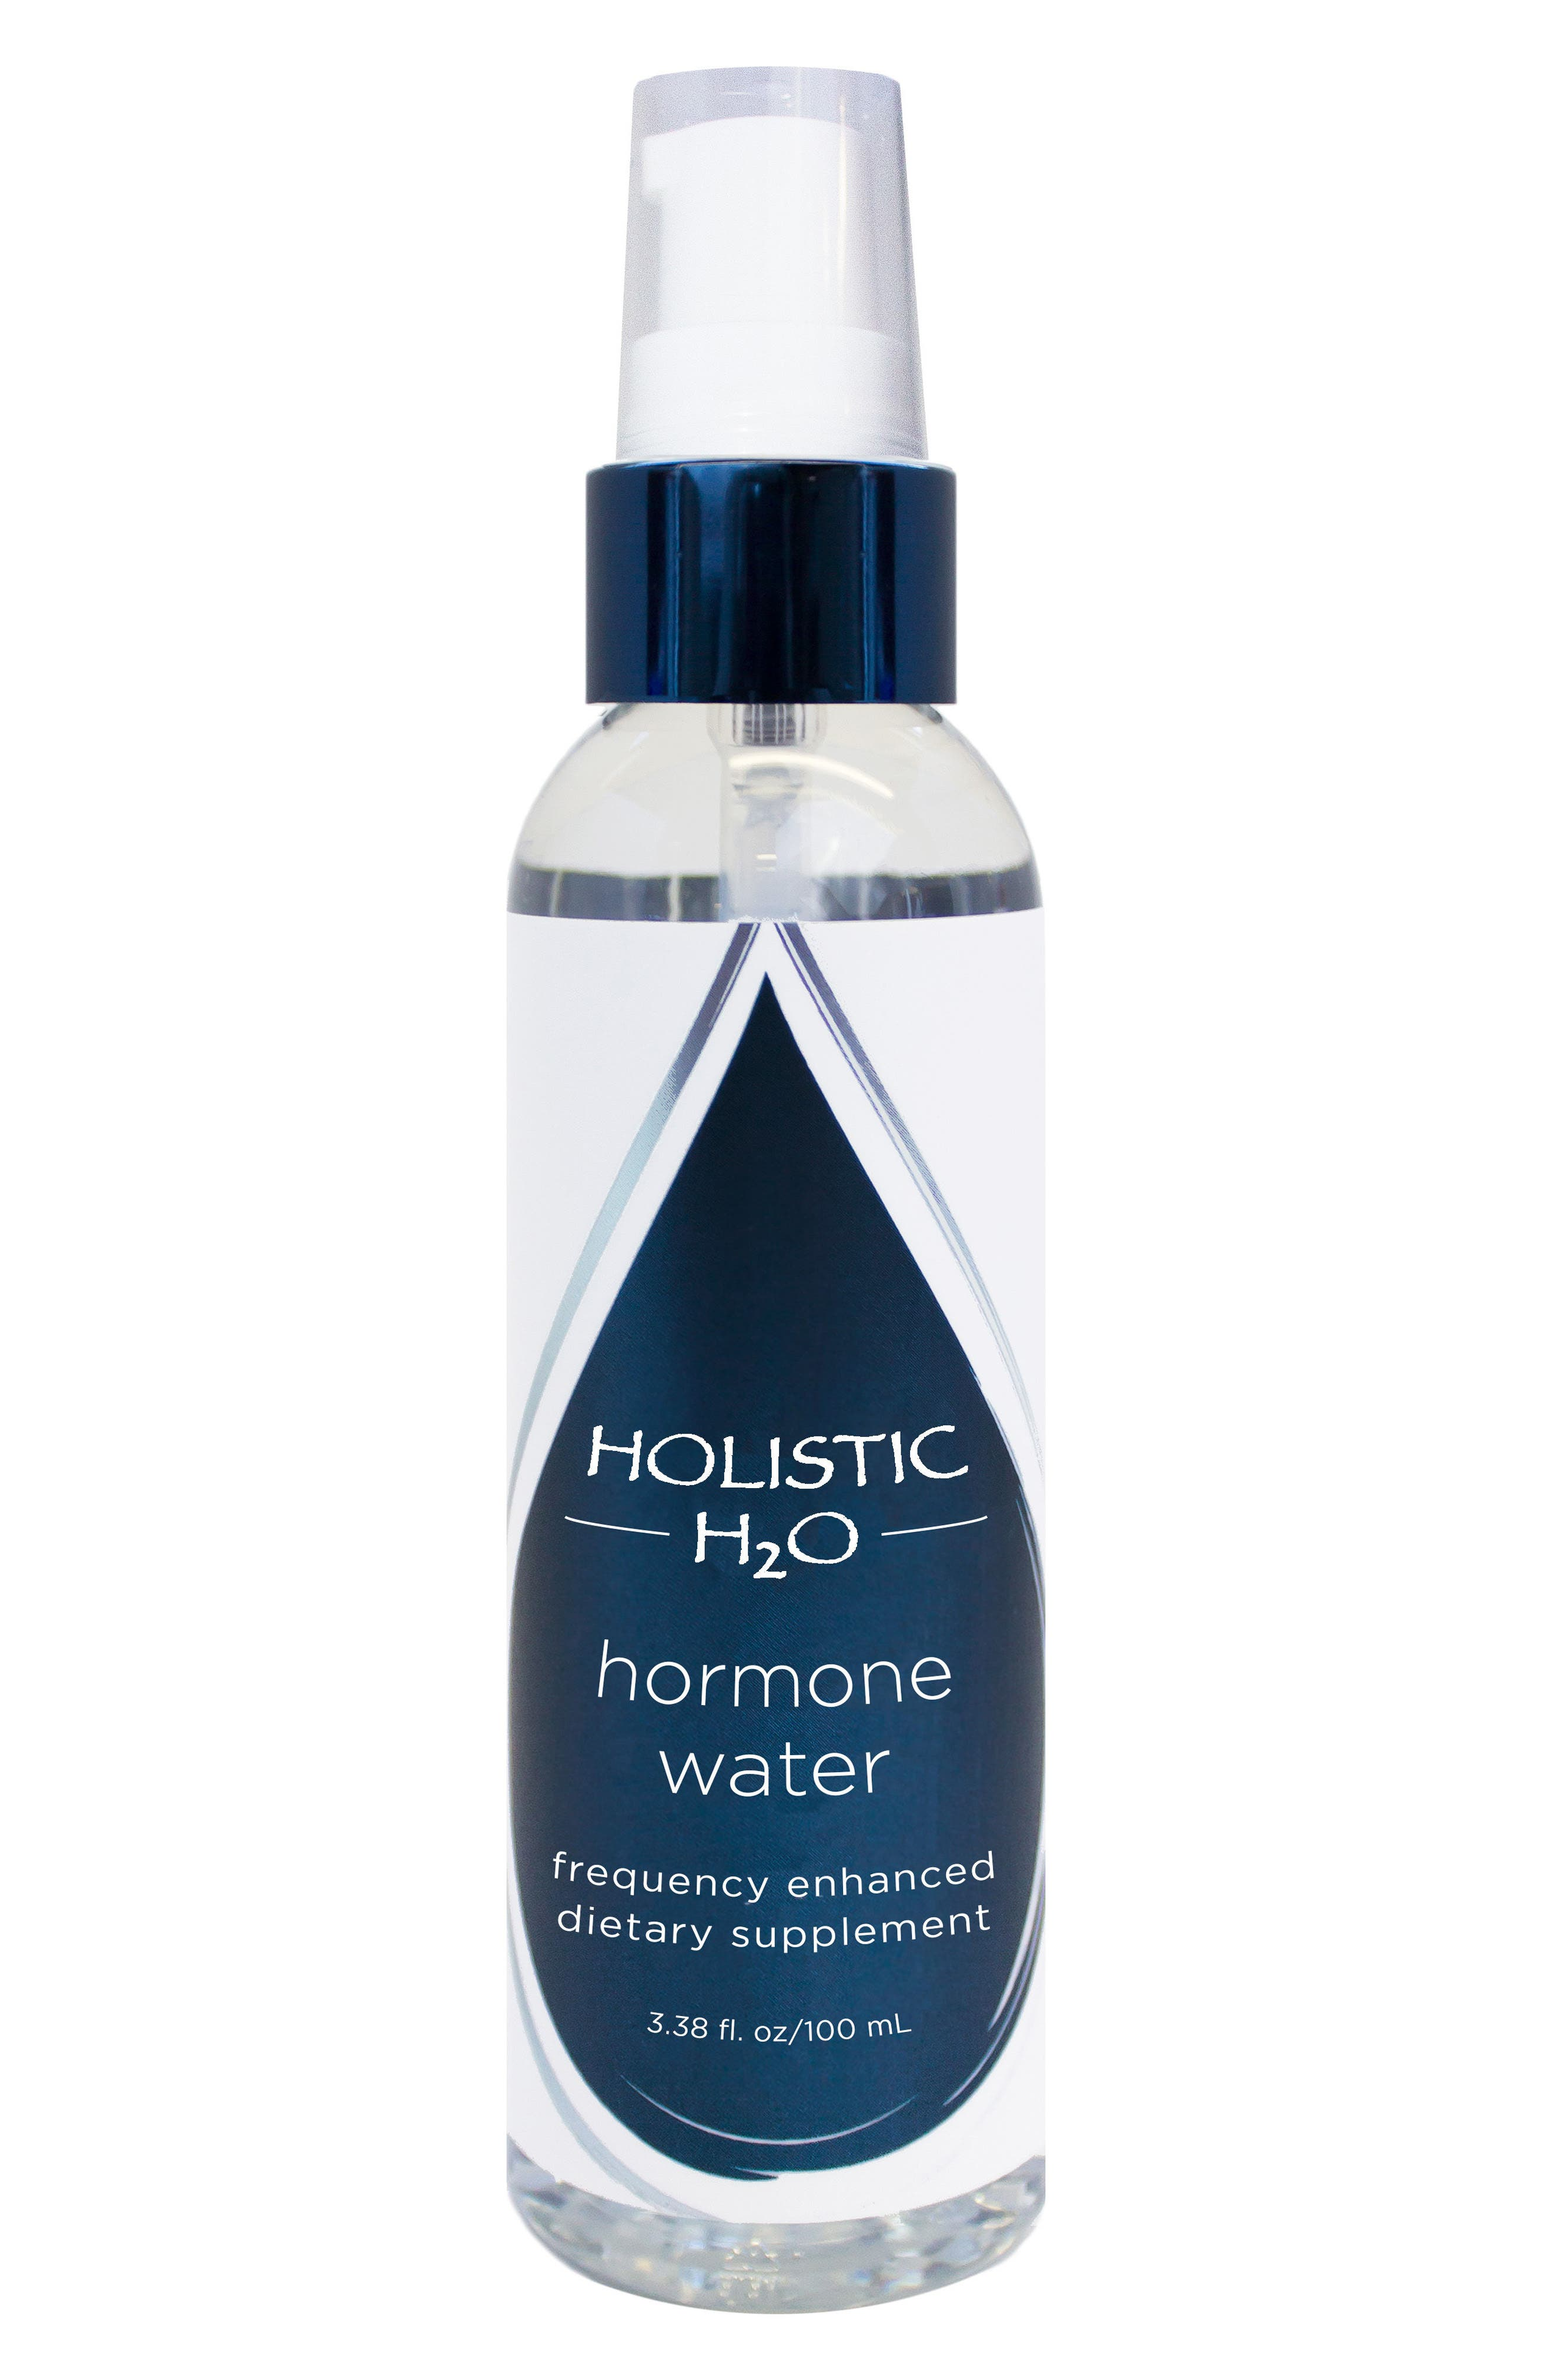 Alternate Image 1 Selected - Holistic H20 Hormone Water Frequency Enhanced Dietary Supplement